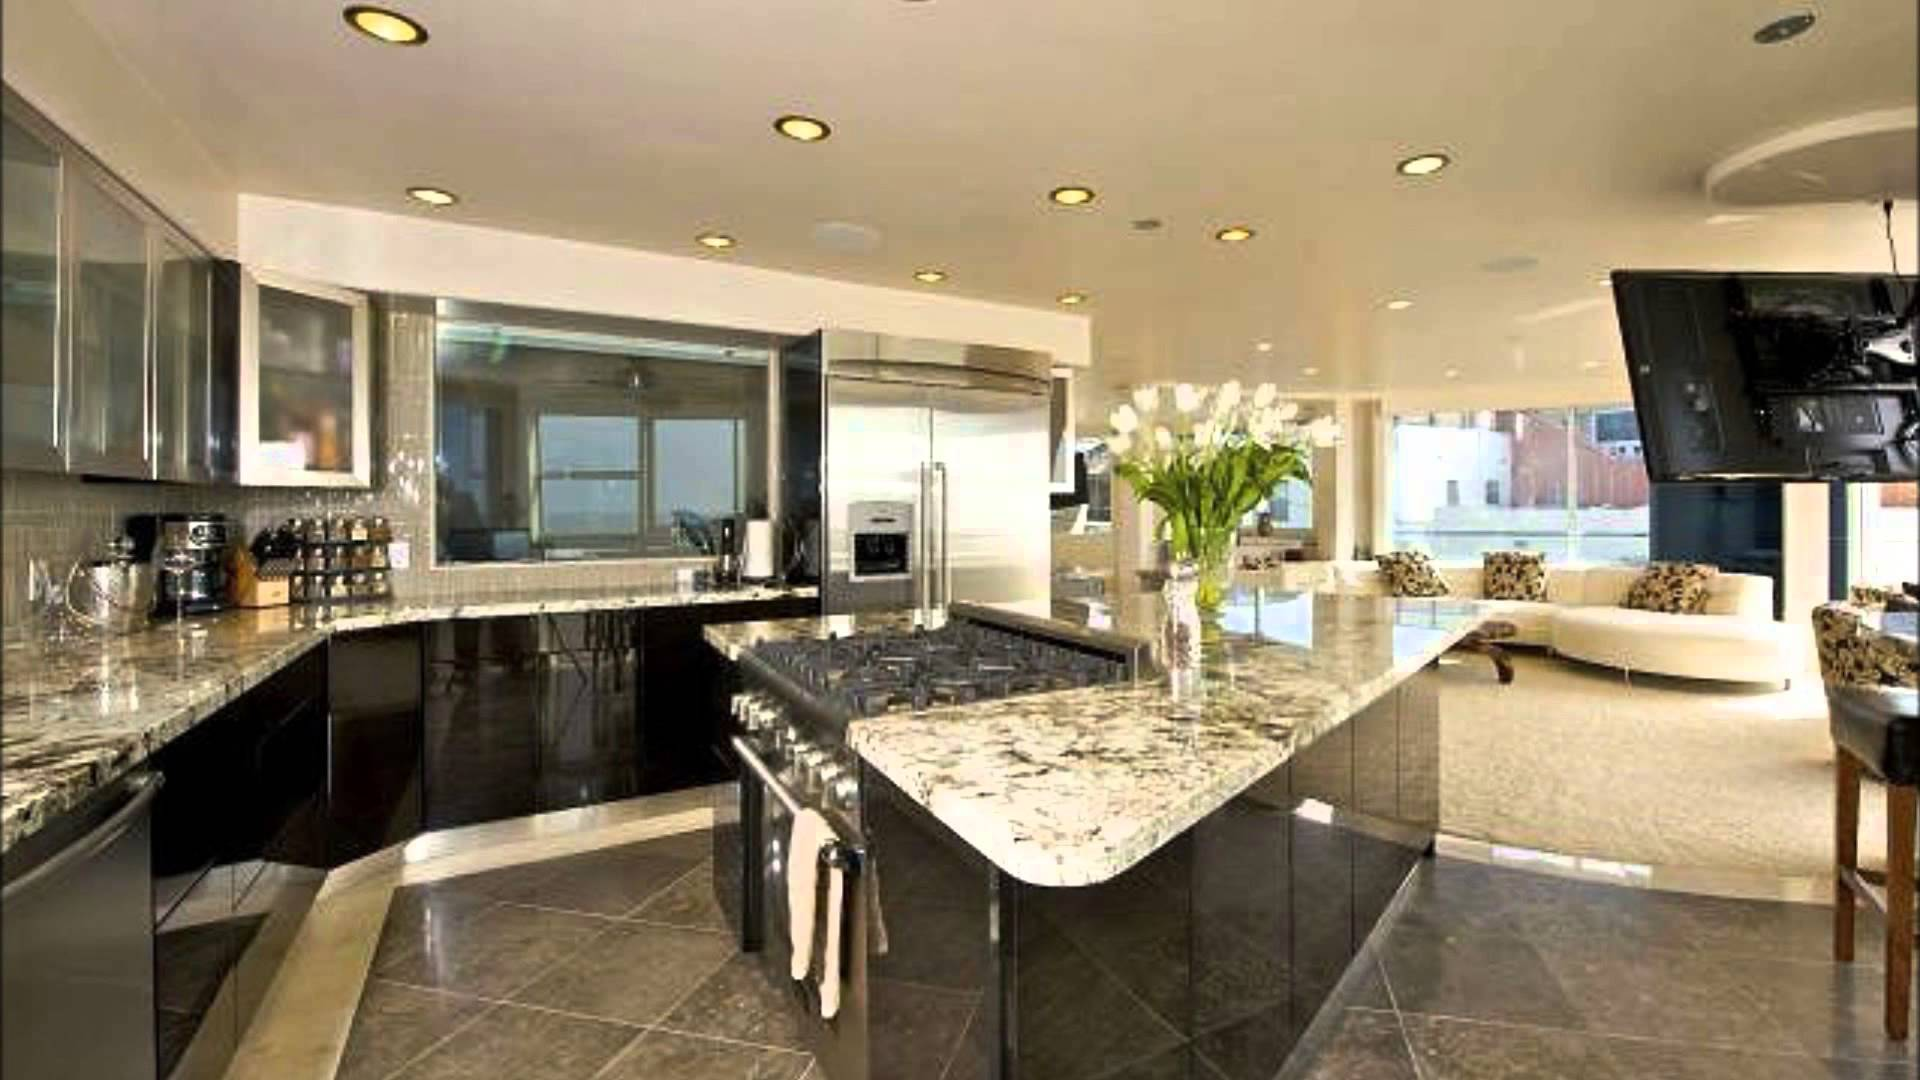 Design your own kitchen ideas with images for Kitchen designs and layout